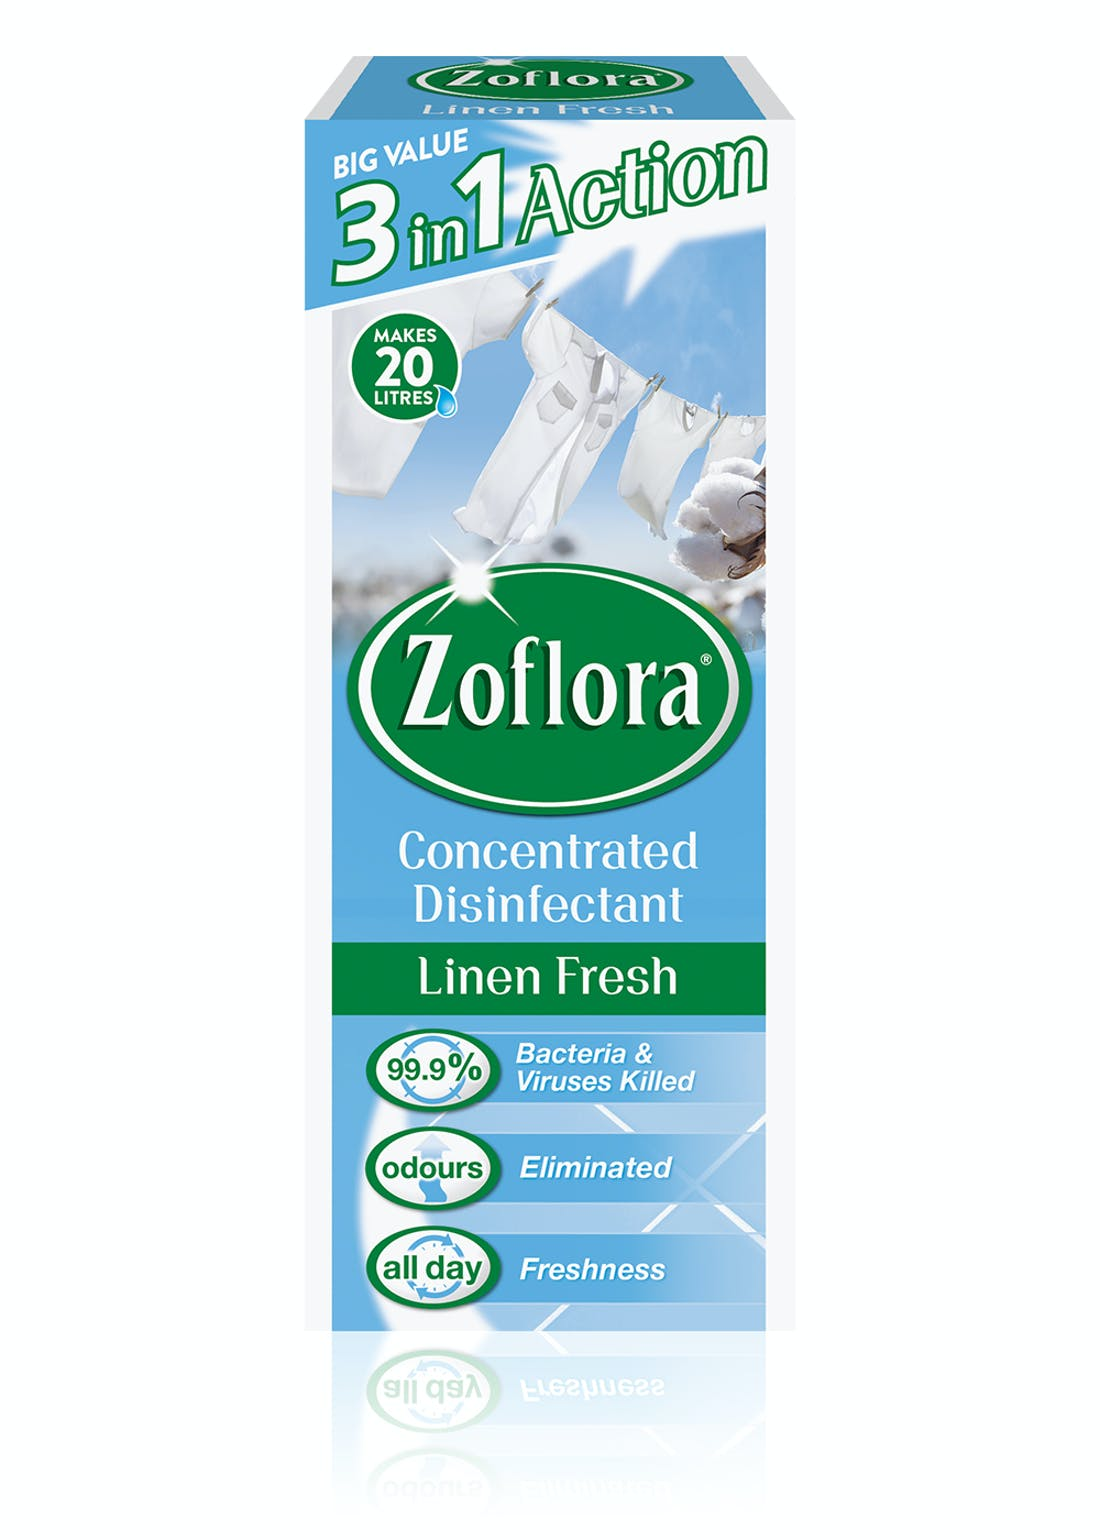 Zoflora Linen Fresh Concentrated Disinfectant (500ml)